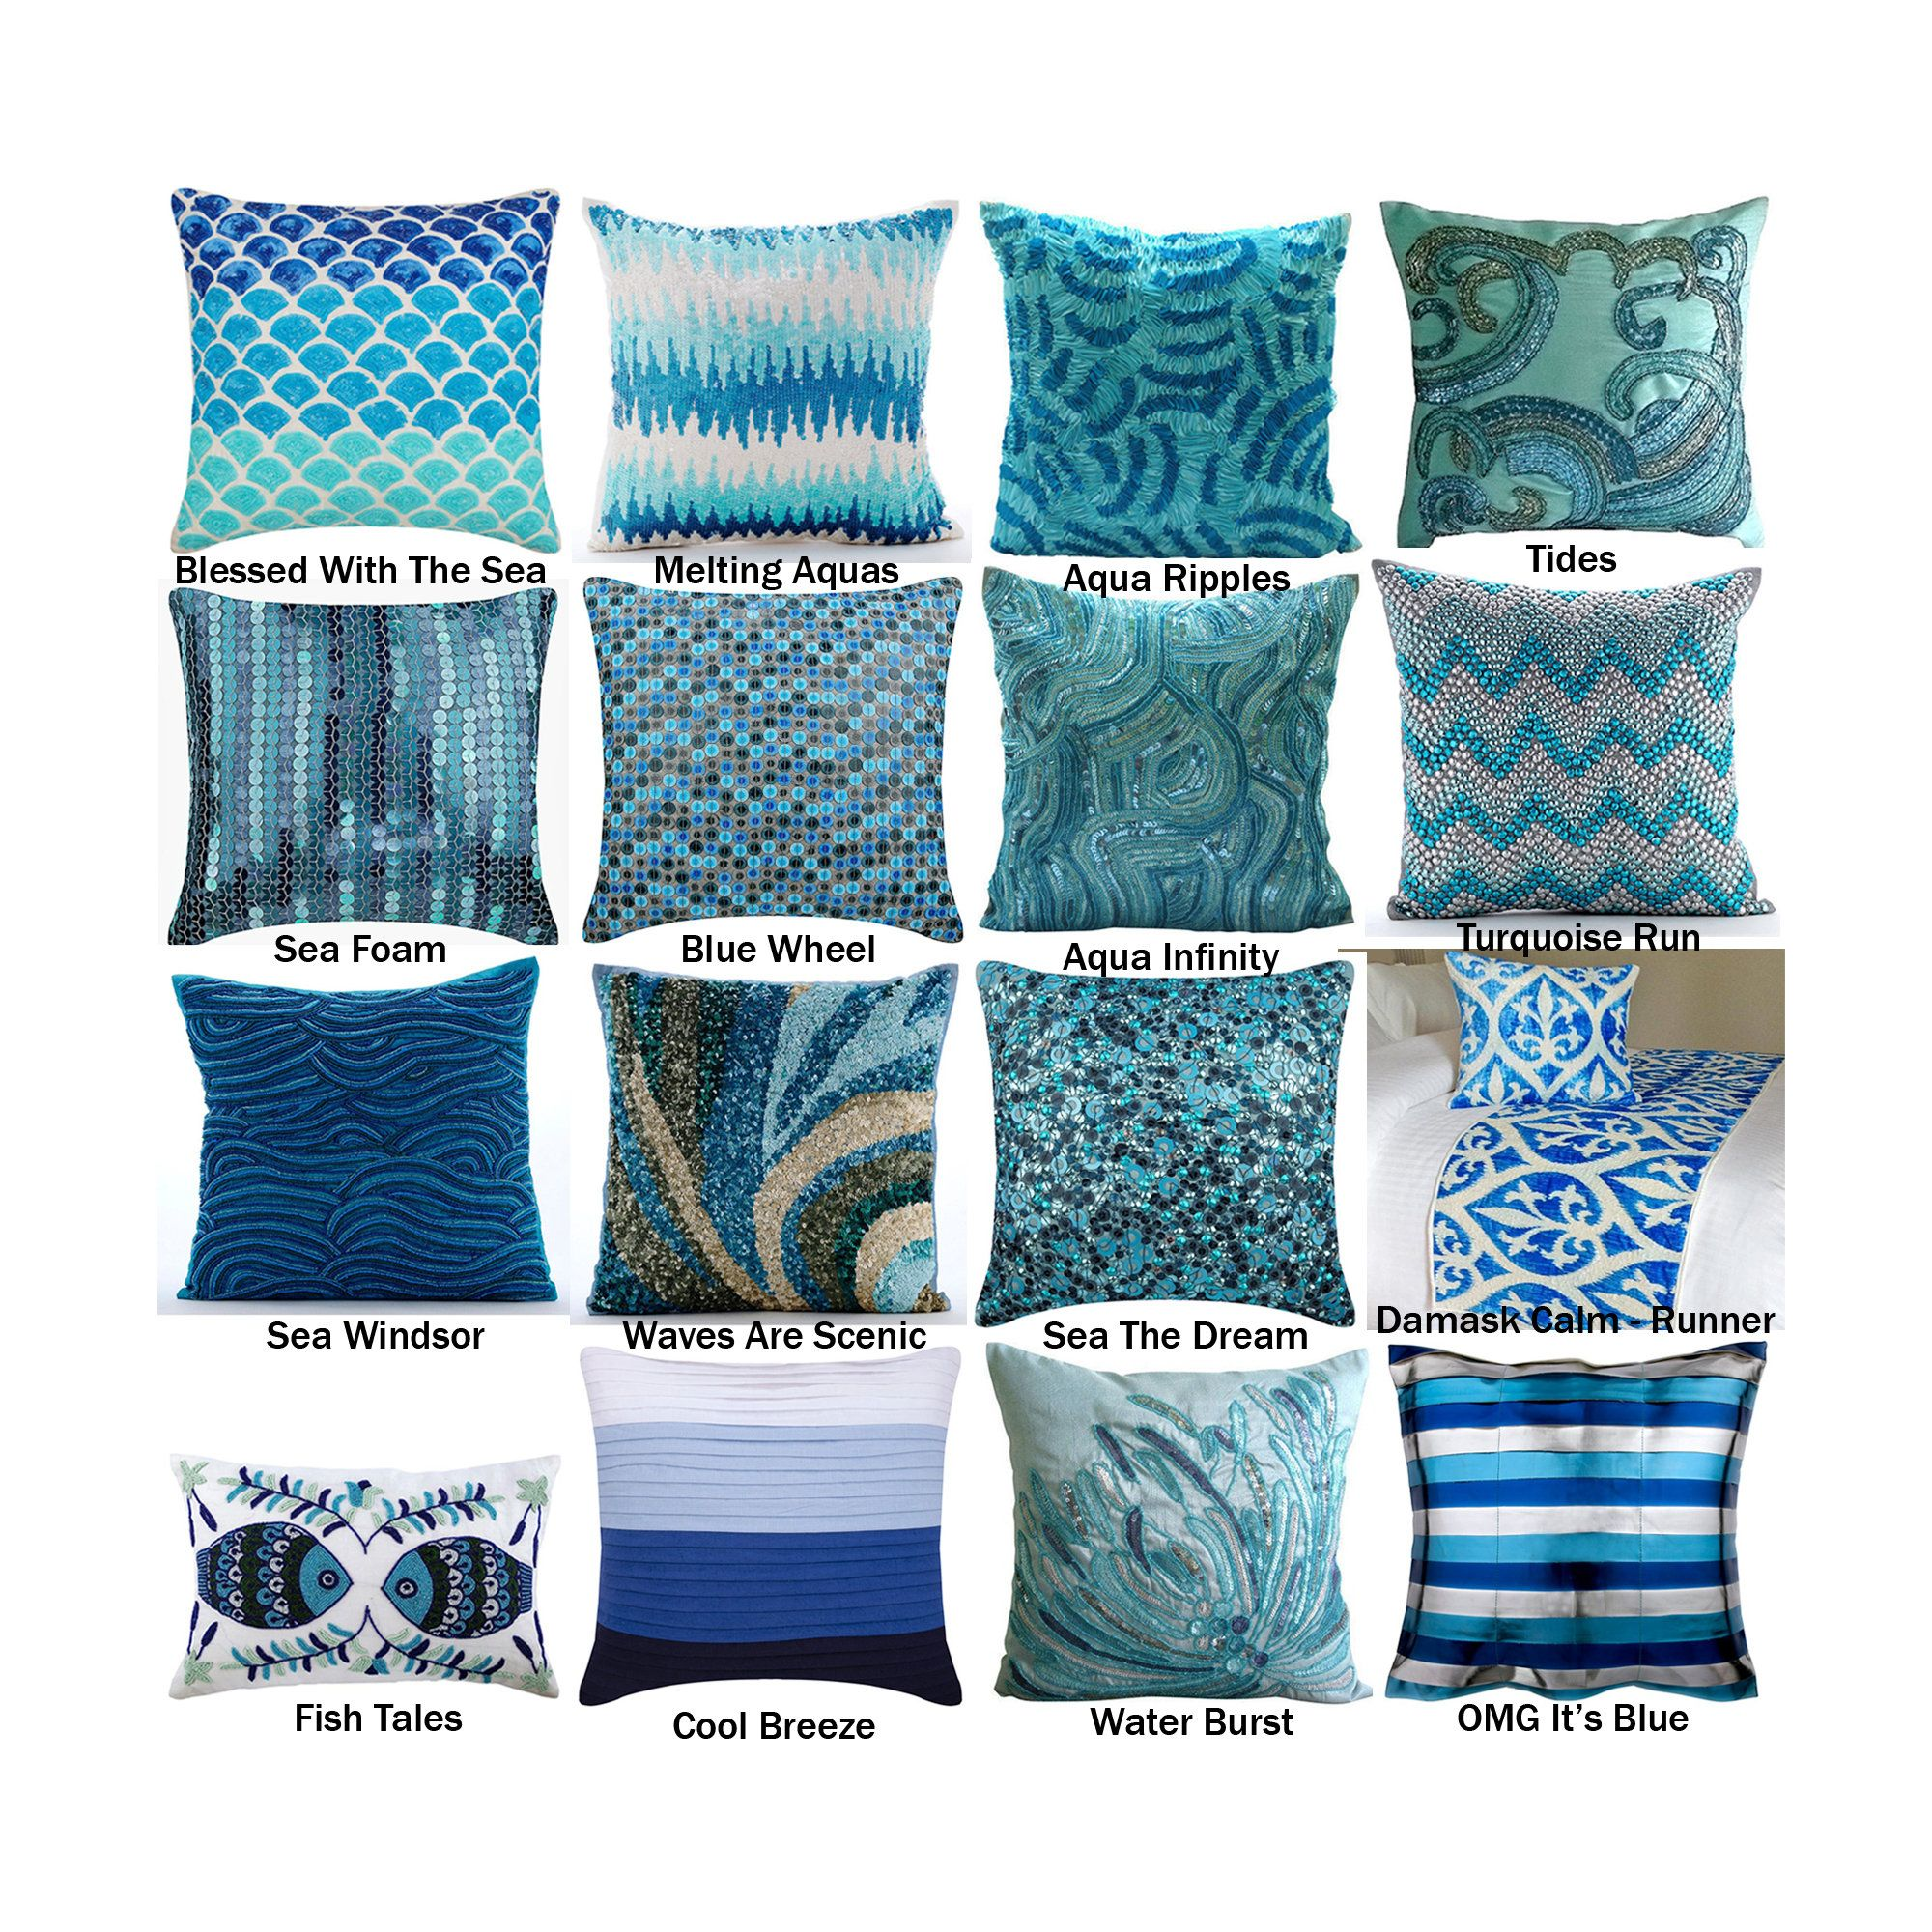 The Ocean Collection Pillow Covers Aqua Decorative Throw Etsy In 2020 Pillows Bed Runner Ocean Themed Pillows